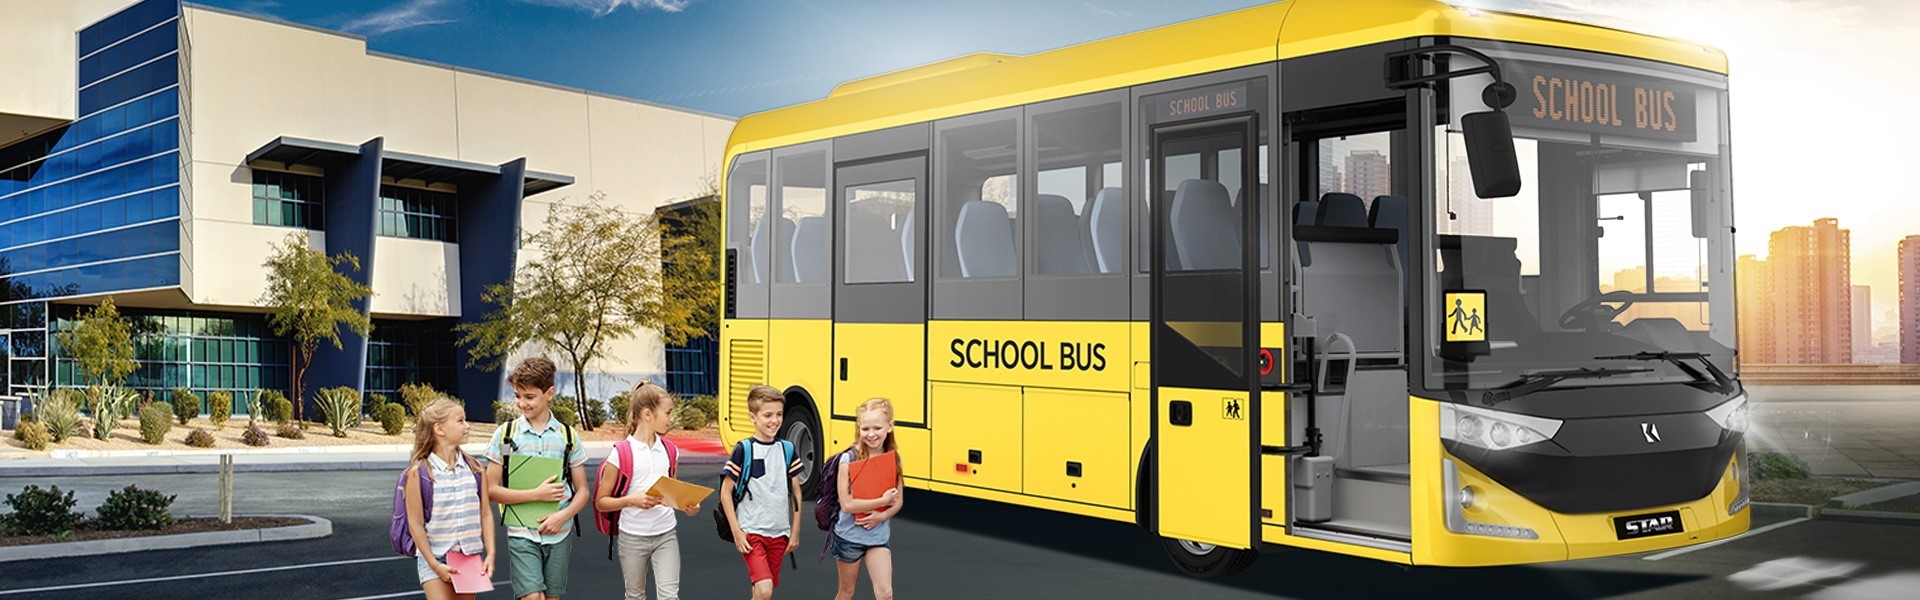 STAR SCHOOL BUS